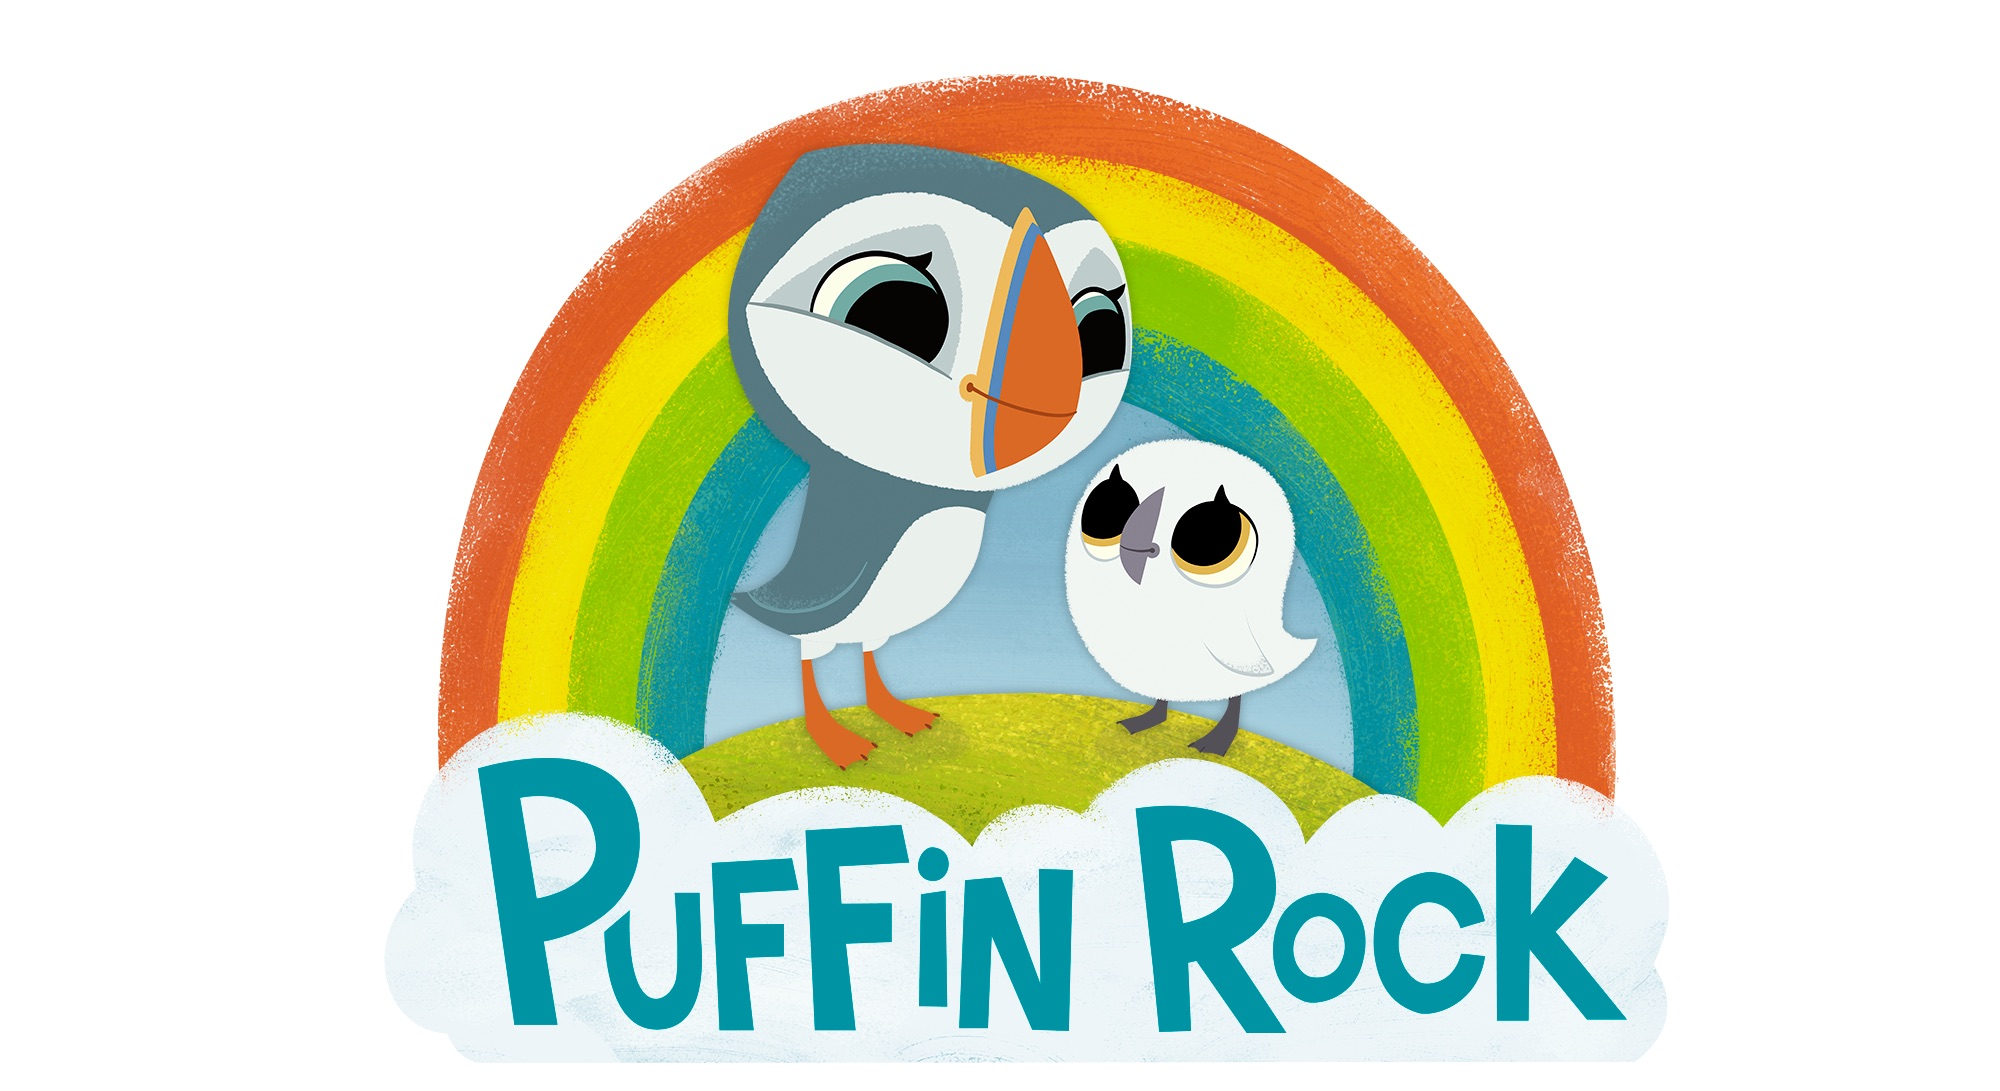 Puffin Rock New Show Coming to Nickr Jr, and Puffin Rock ...